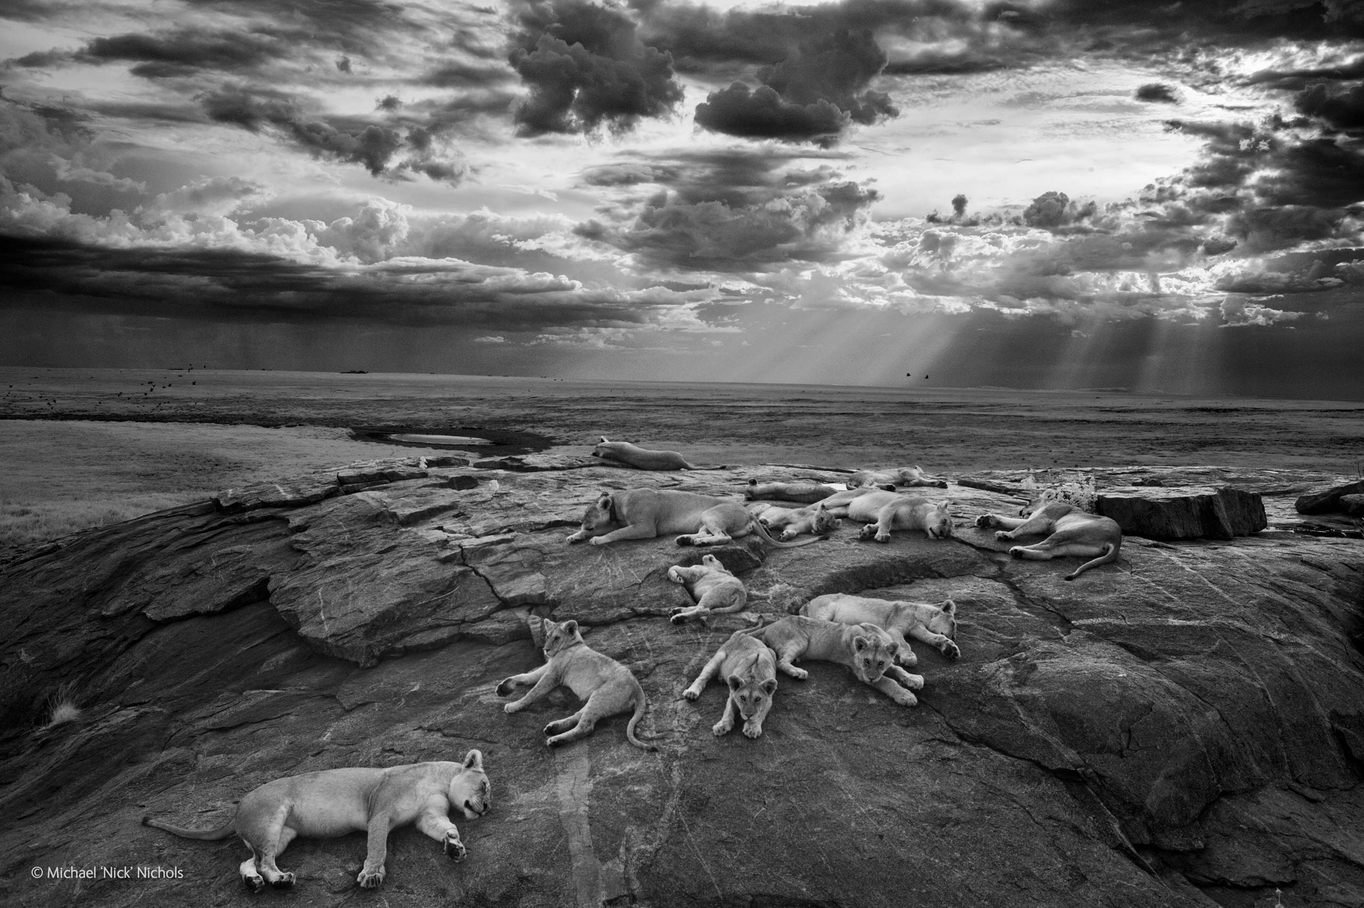 """Michael """"Nick"""" Nichols won the grand prize at London's Natural History Museum's 2014 Wildlife Photographer of the Year Competition with this black-and-white photo of snoozing lions in Tanzania's Serengeti National Park."""